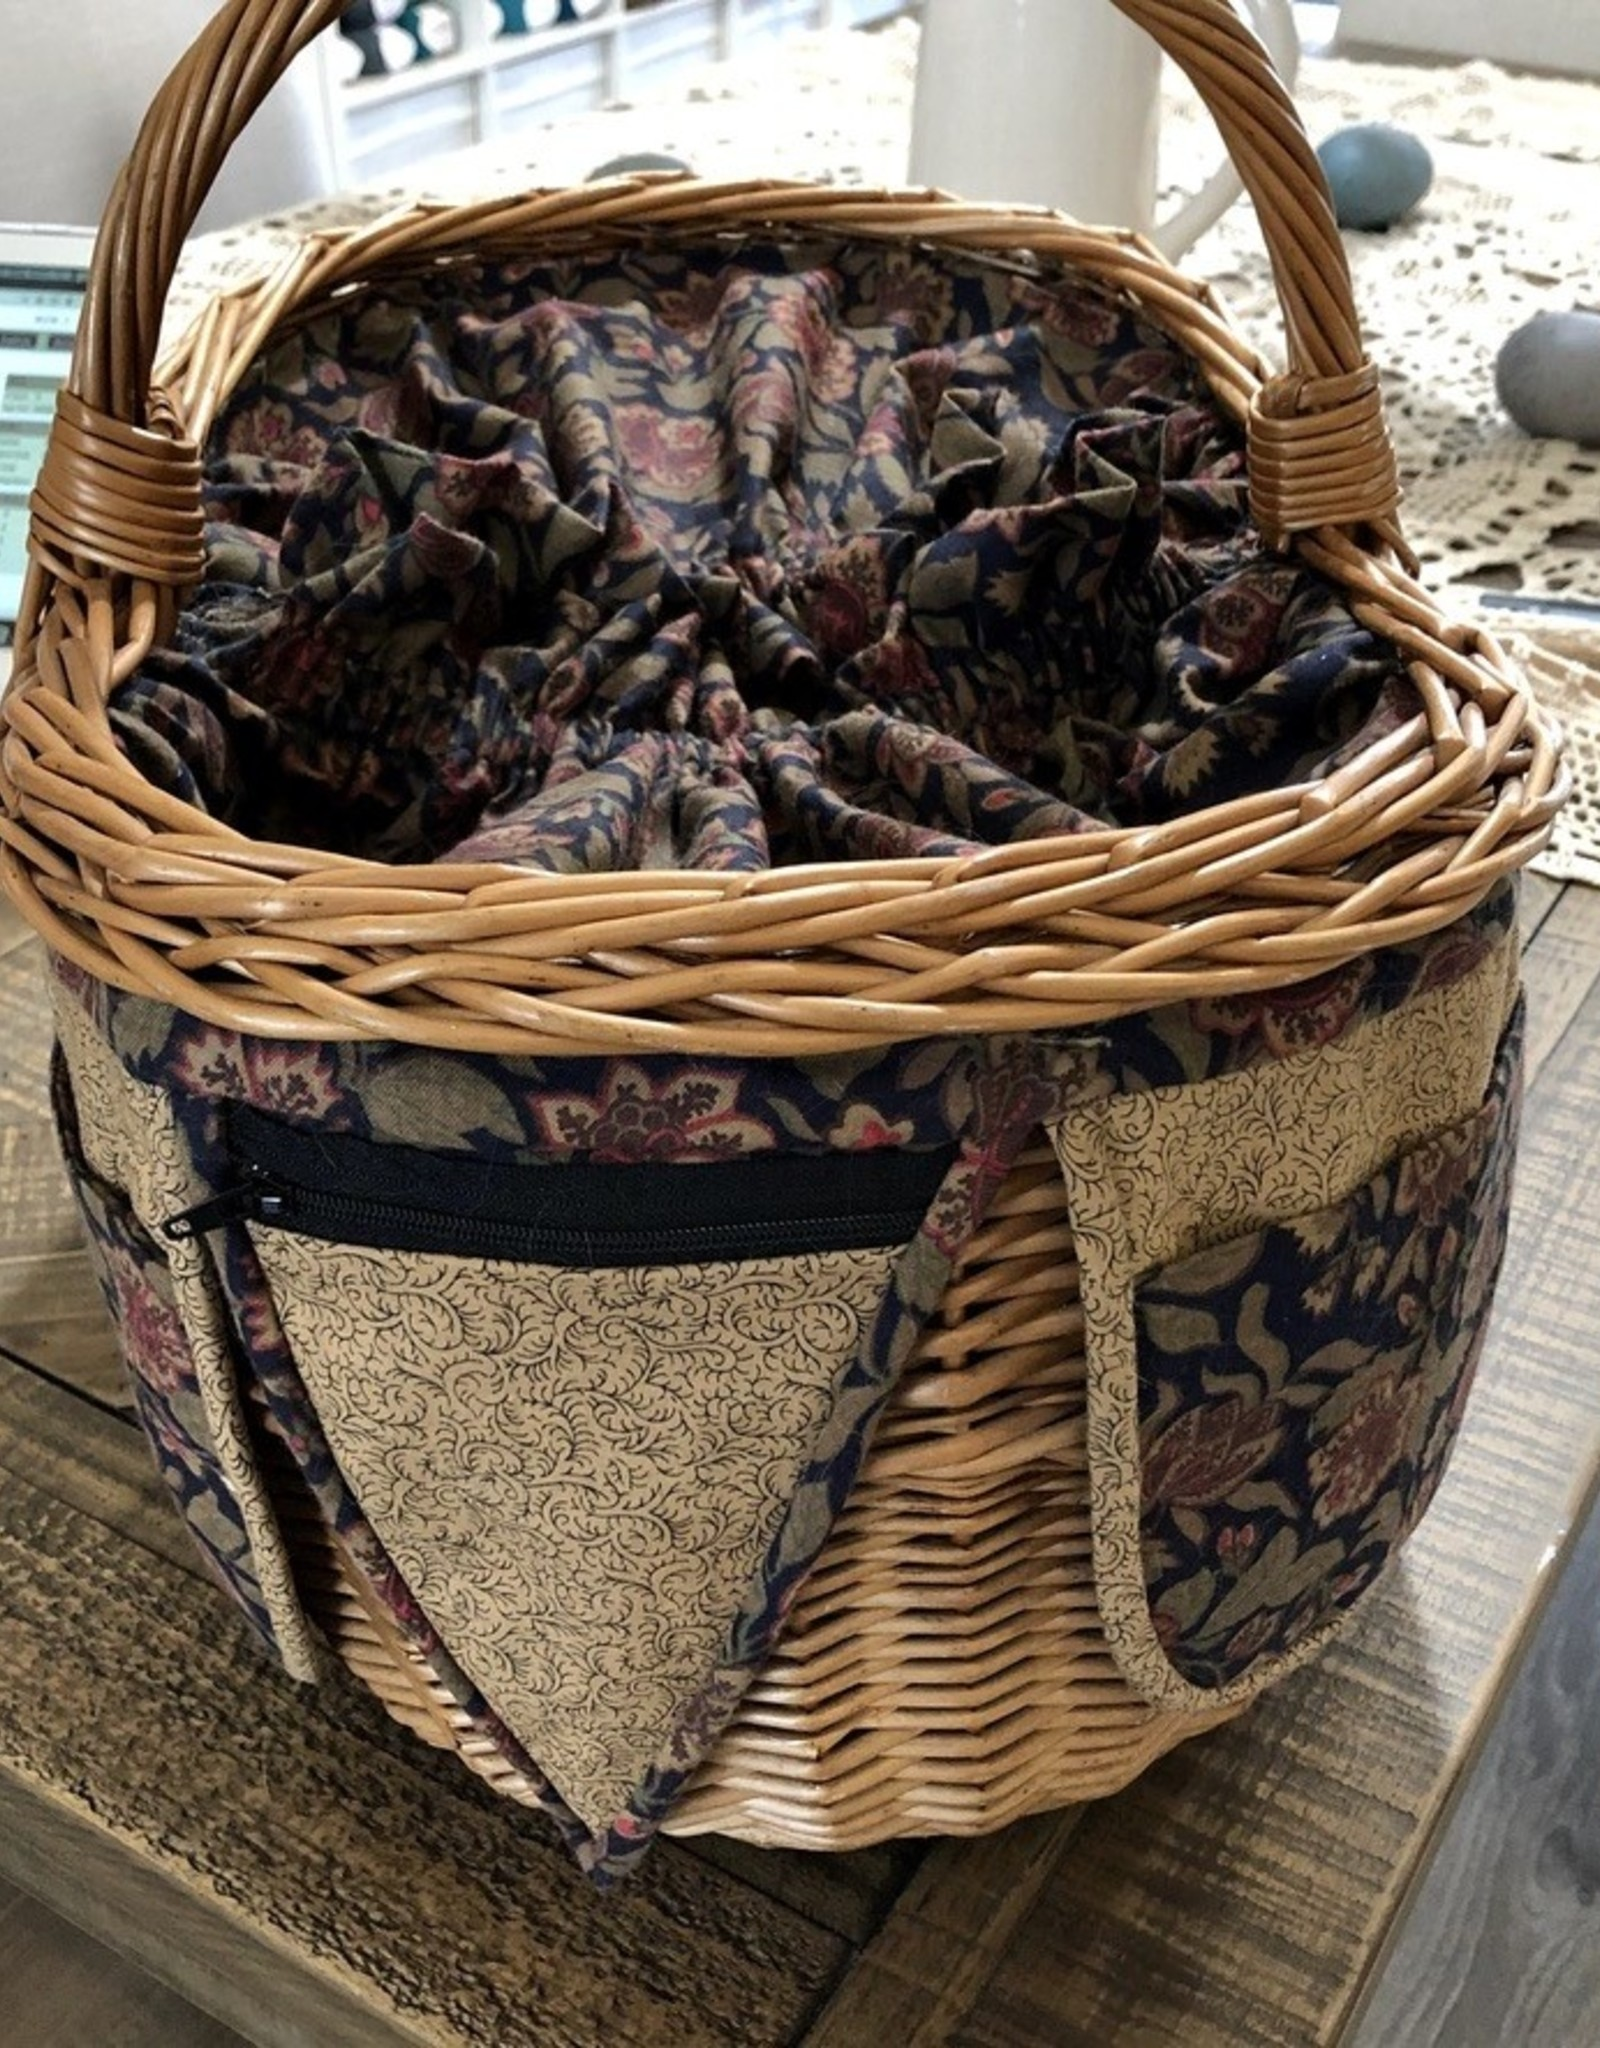 Knit Basket